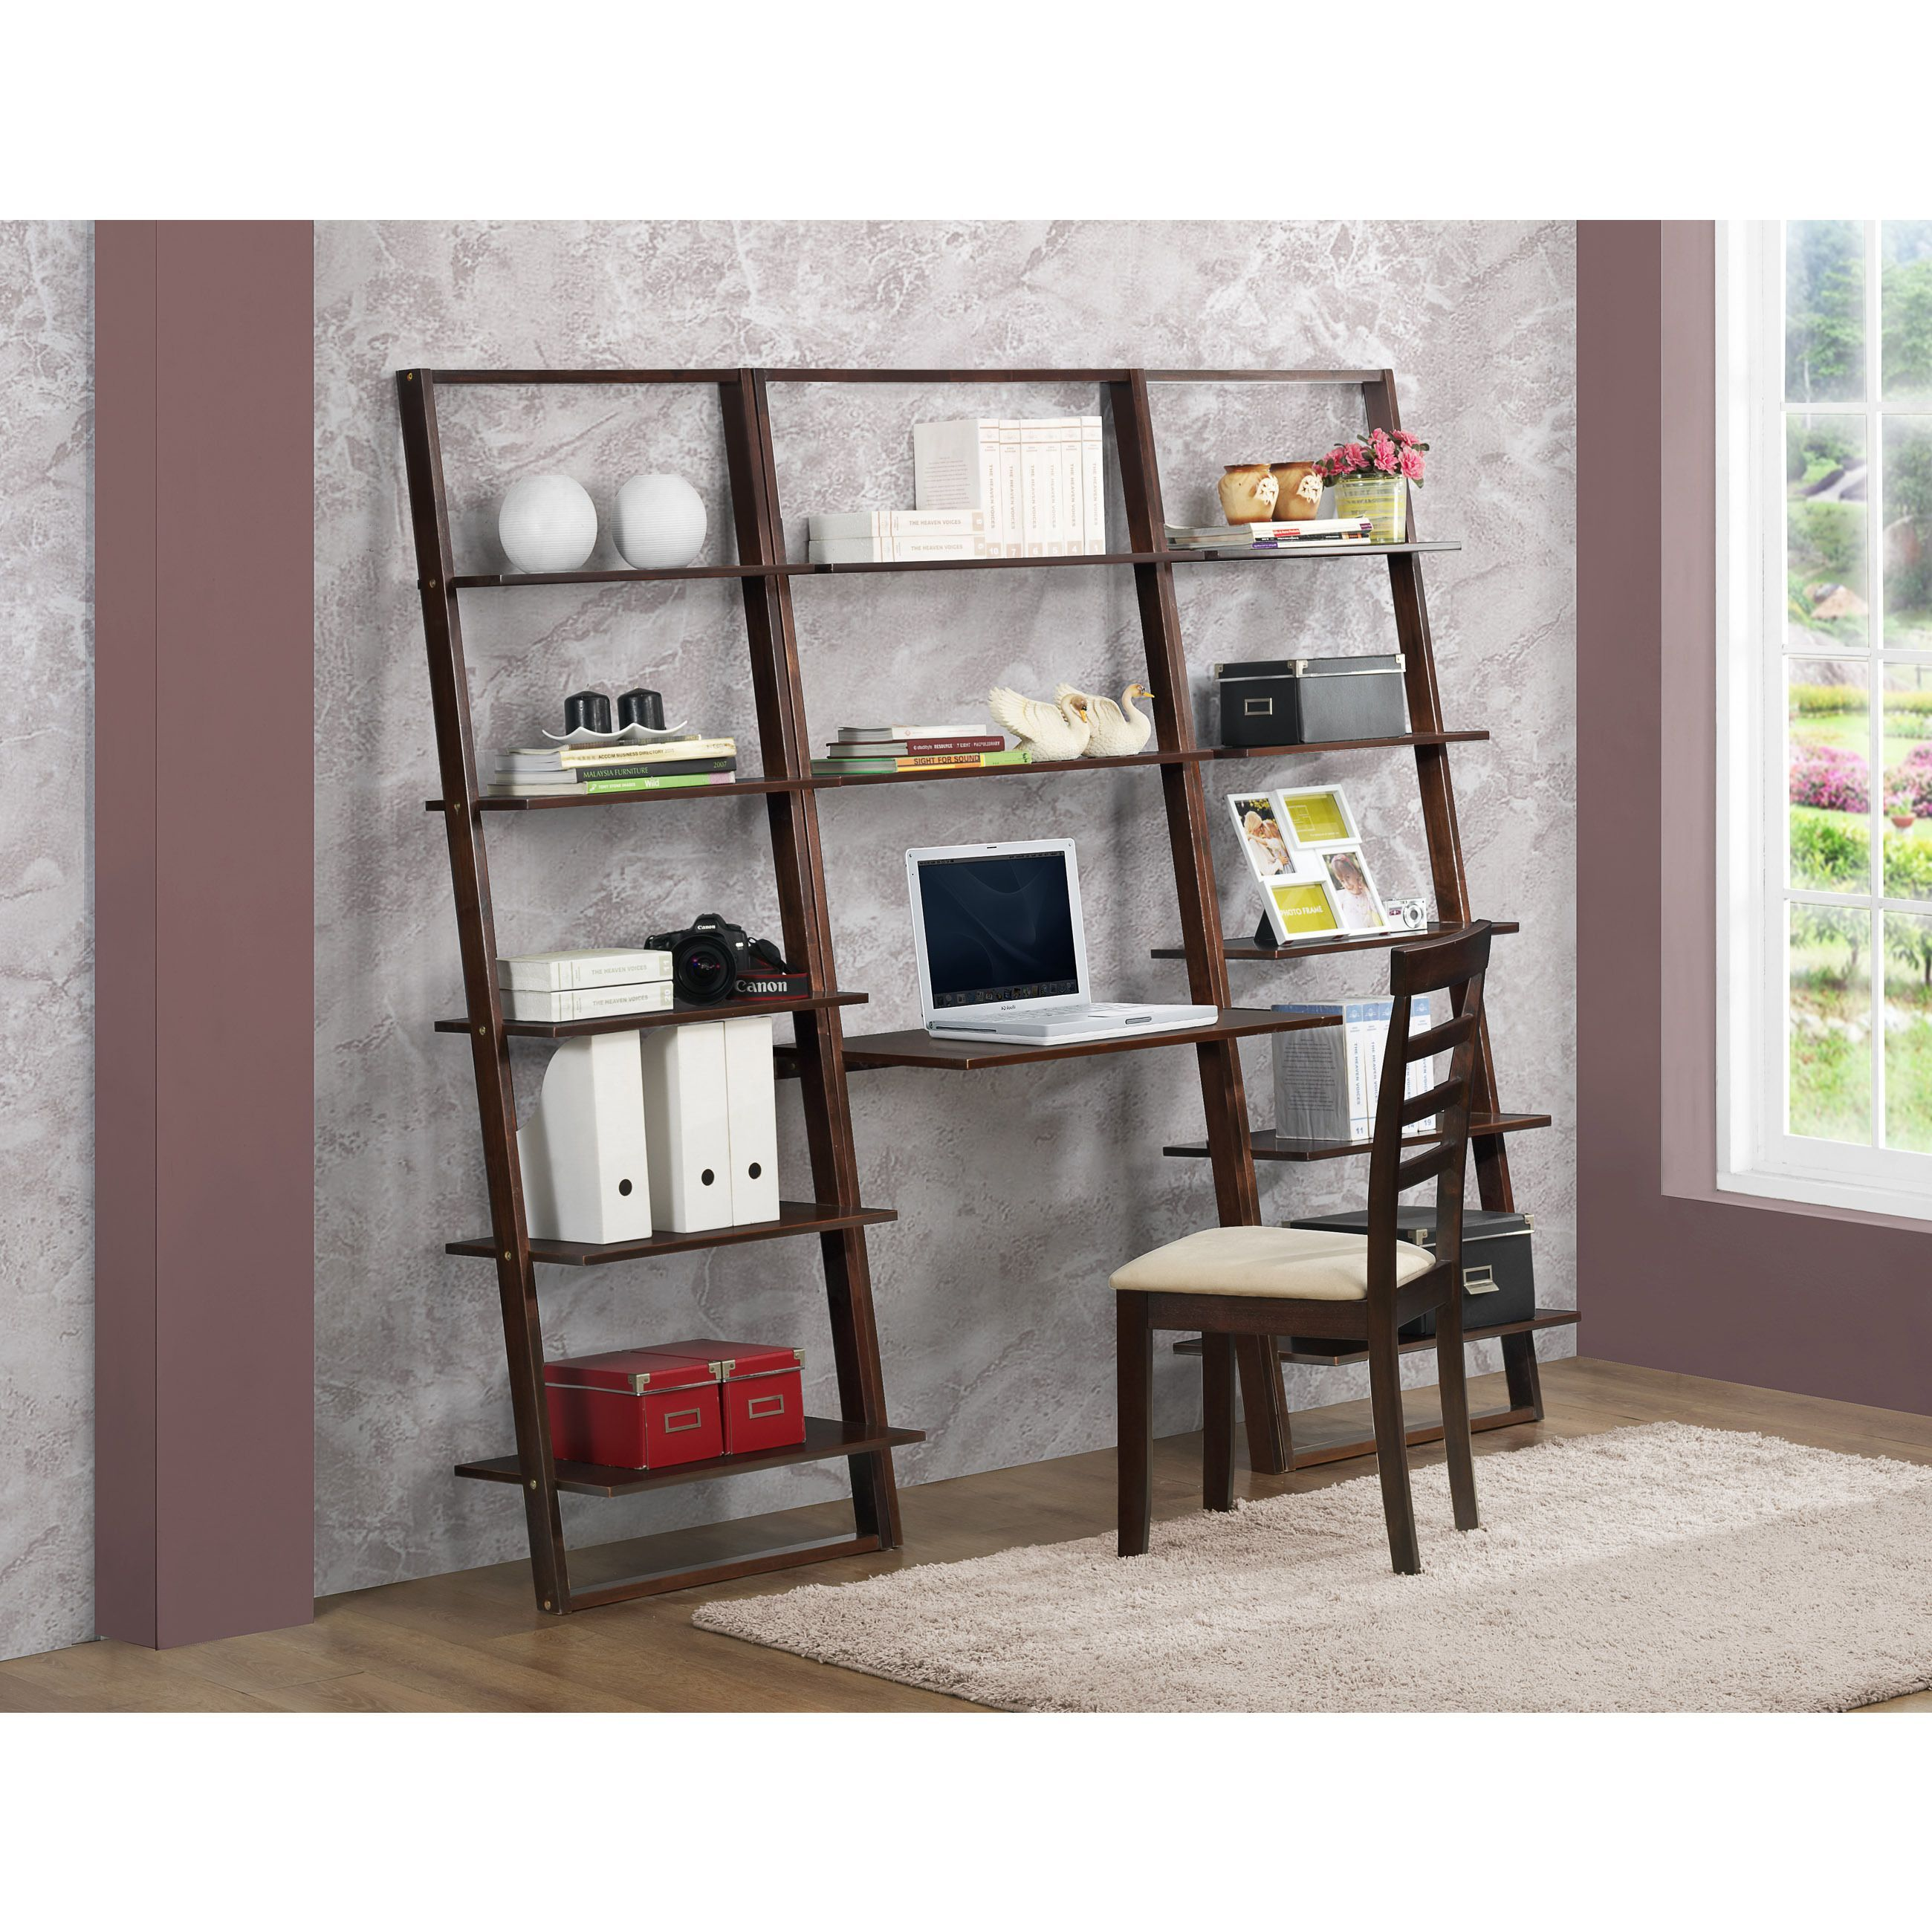 Arlington cappucino wood desk with ladder bookcases arlington